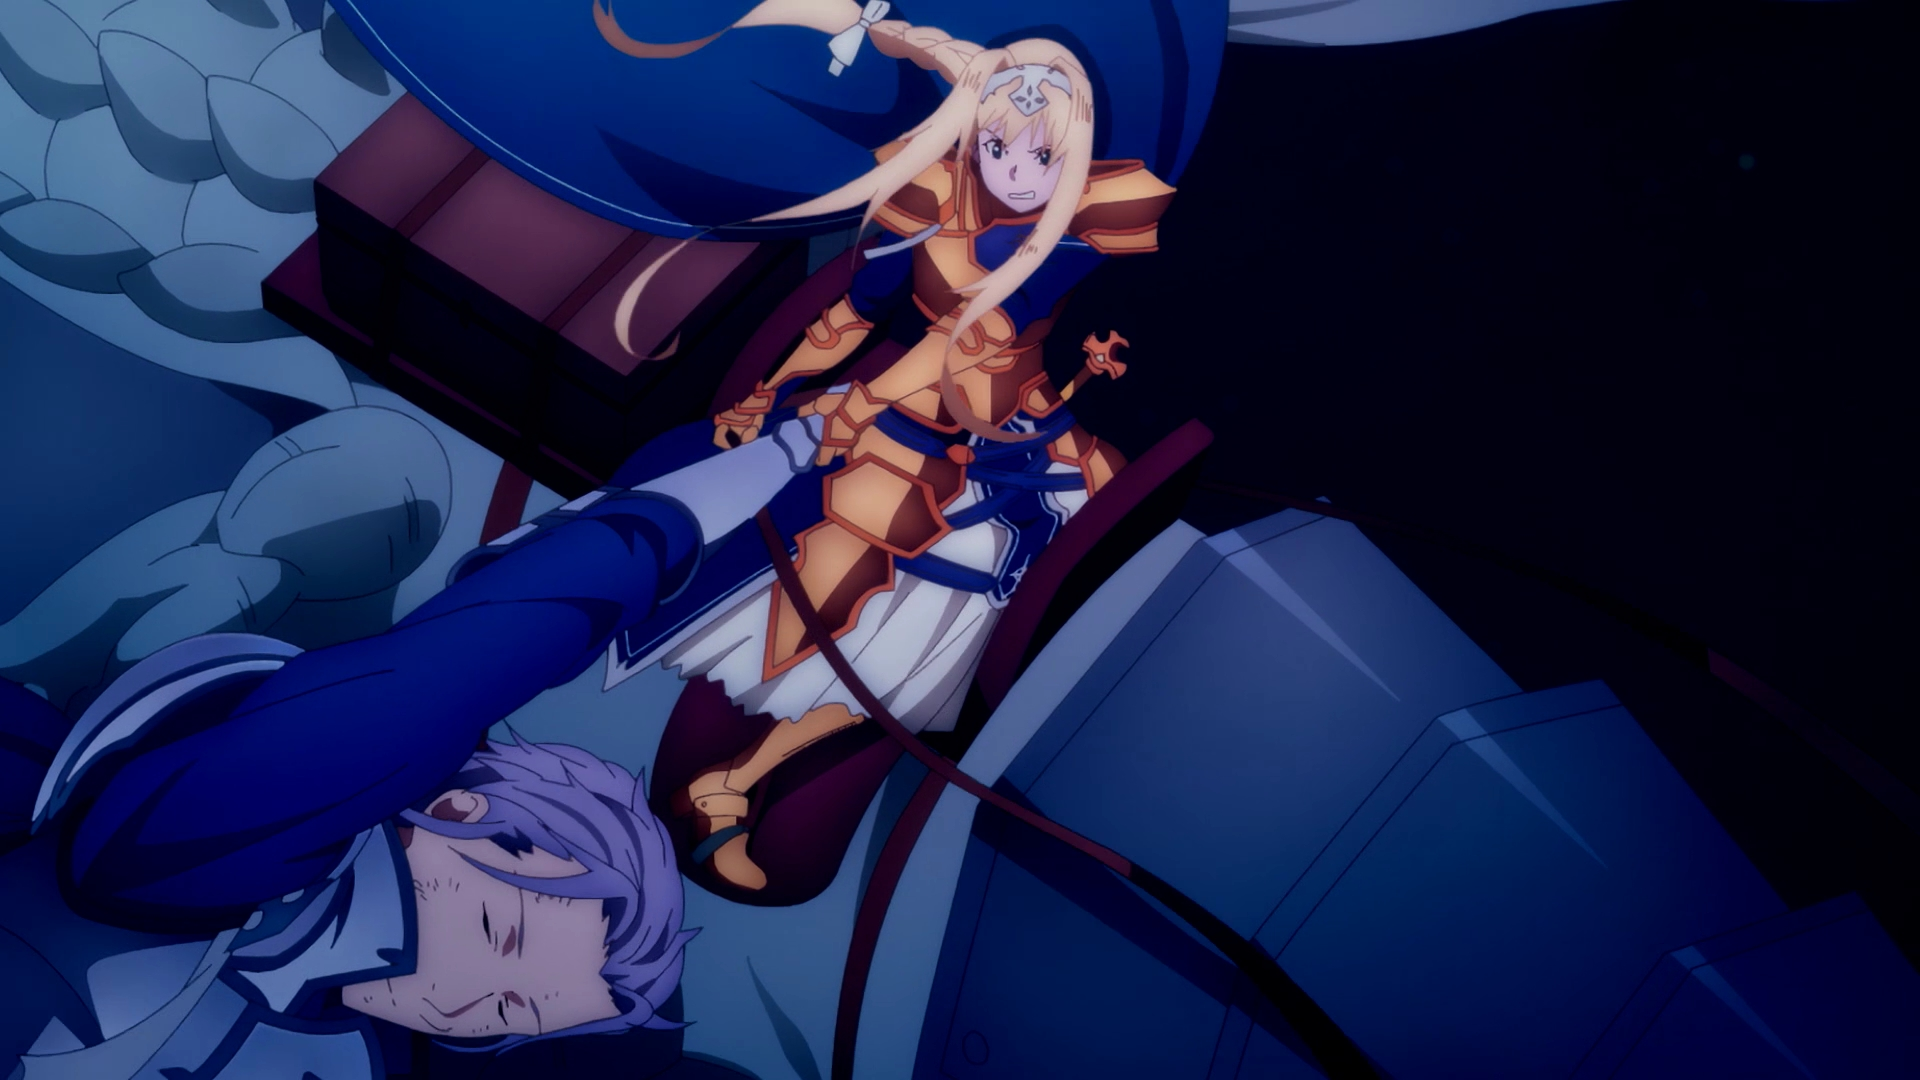 刀劍神域Alicization War of Underworld第8集 血與命